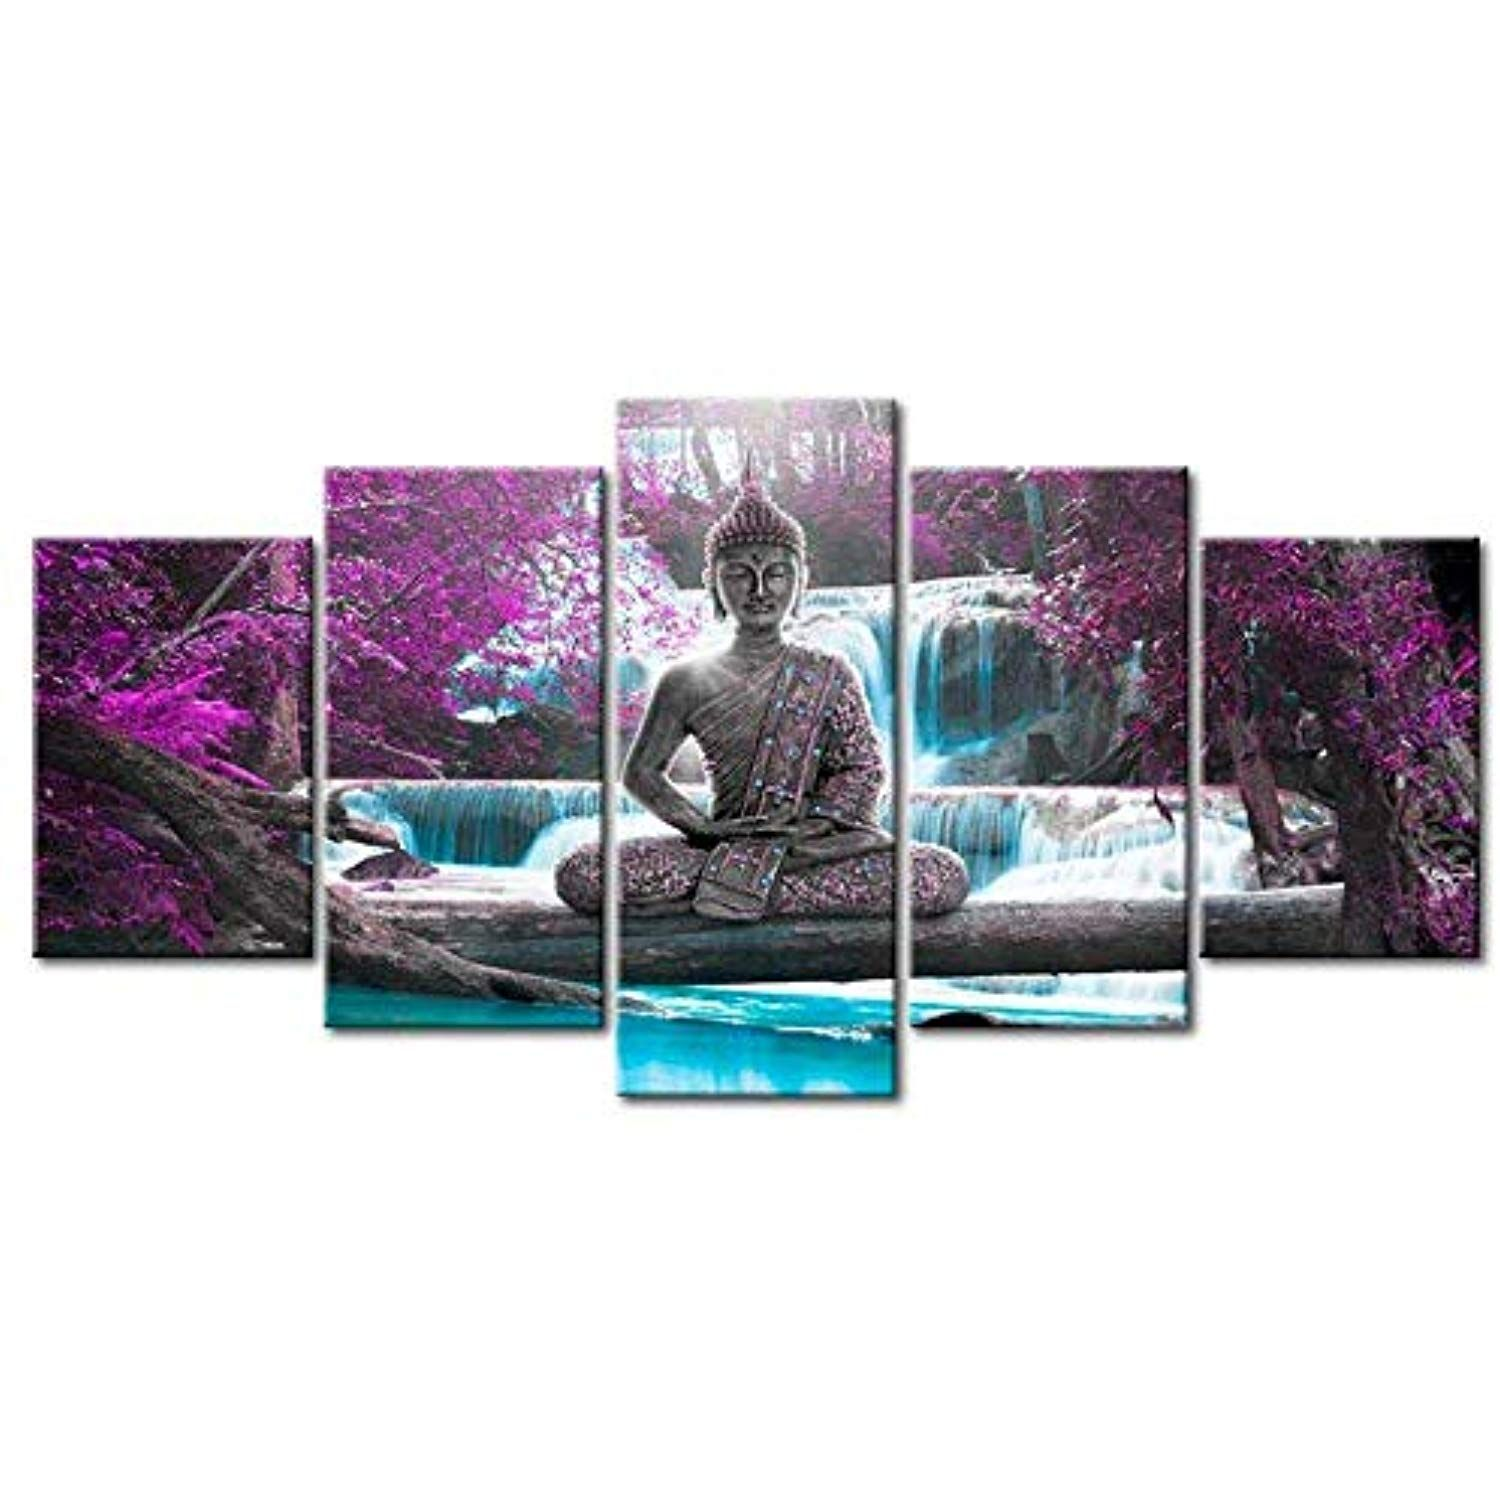 Awlxphy Decor Large Buddha Waterfall Wall Art Canvas Painting Framed 5 Panels For Living Room Decor Buddha Wall Art Waterfall Wall Art Buddha Wall Art Canvases